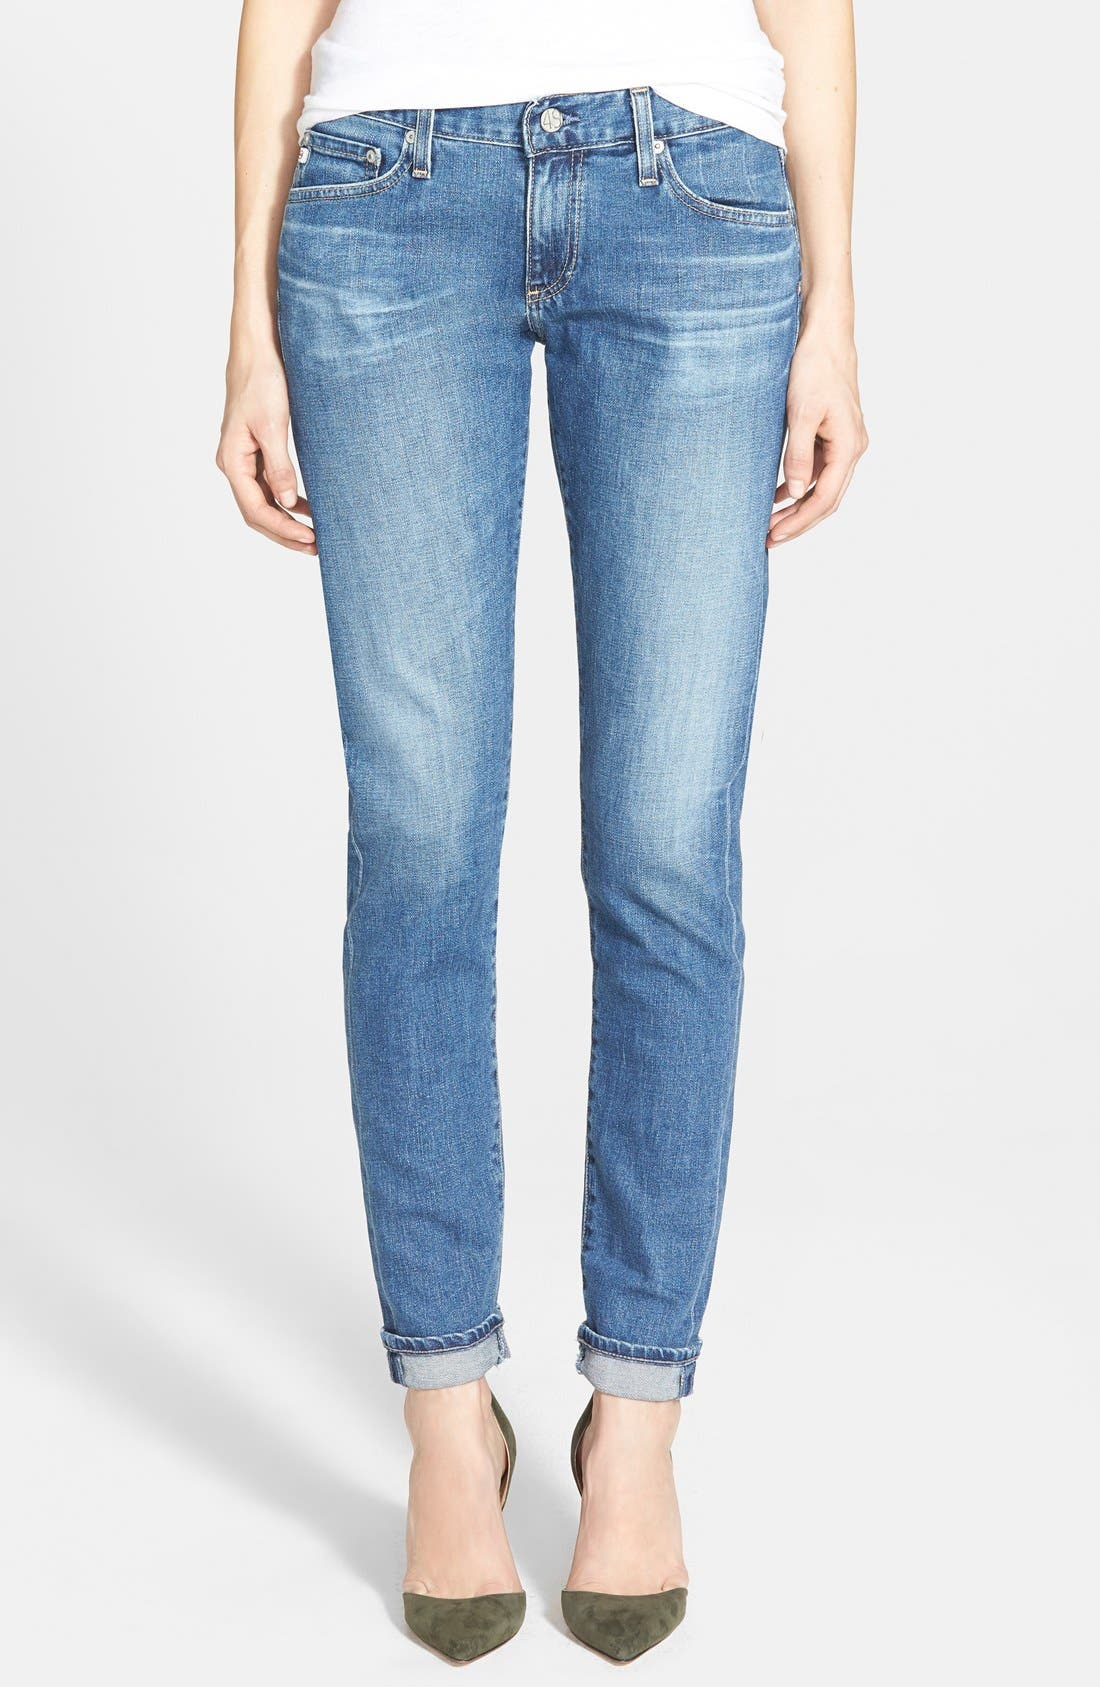 'The Nikki' Relaxed Skinny Jeans,                         Main,                         color, 8 Year Tundra